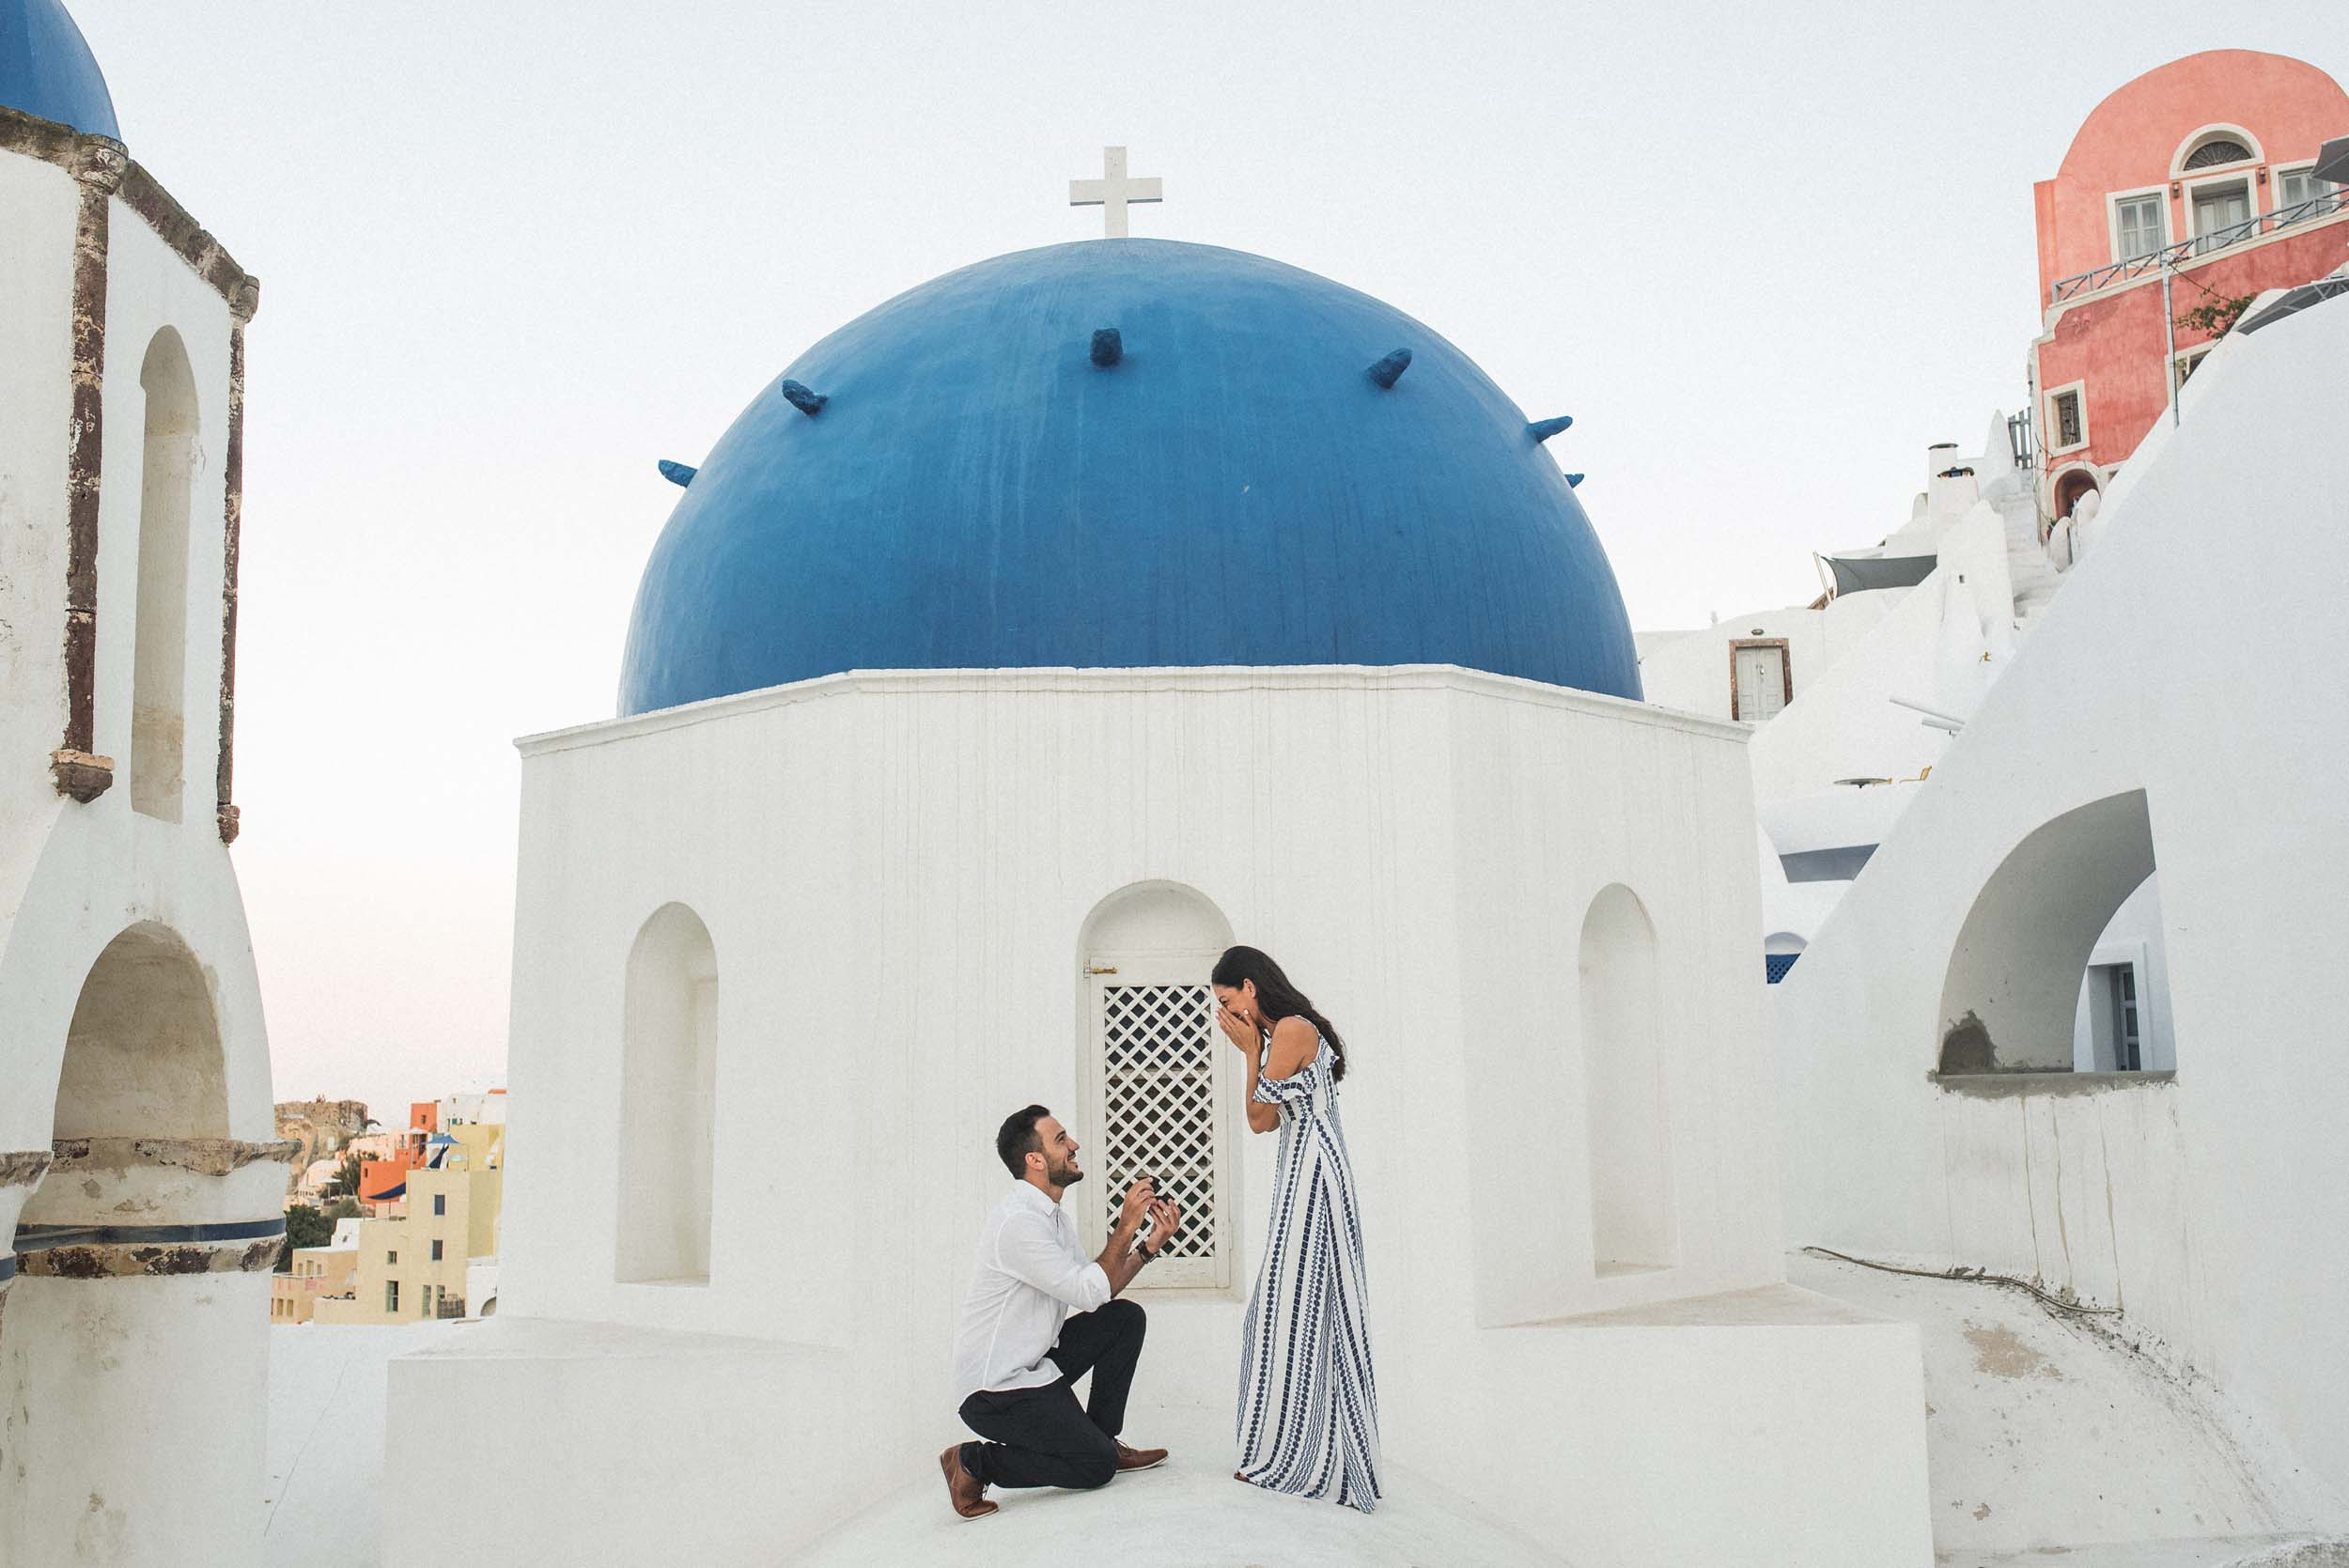 The Knot Names the Most Popular Places in the World to Propose